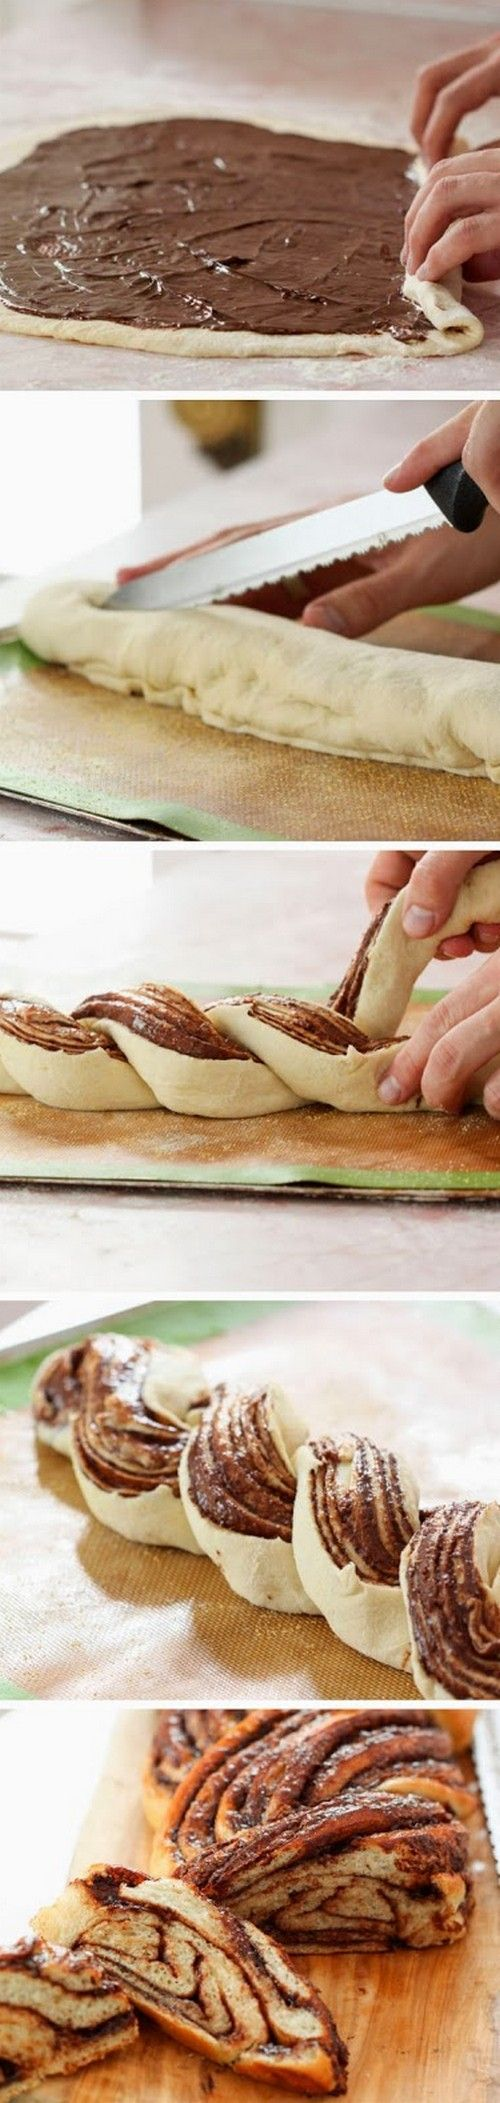 Braided Nutella Bread Recipe @Joyce Novak Novak Novak Novak Green